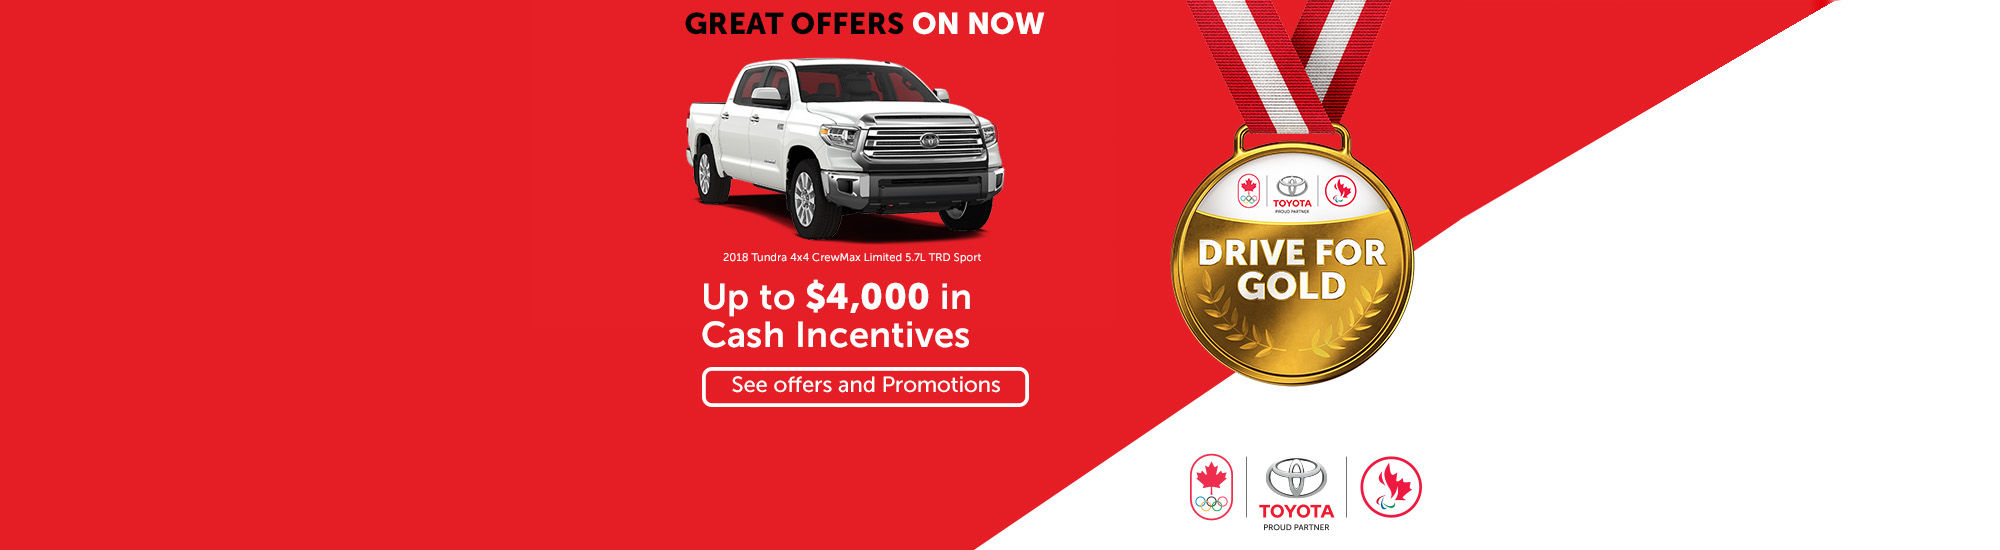 Drive for gold Toyota